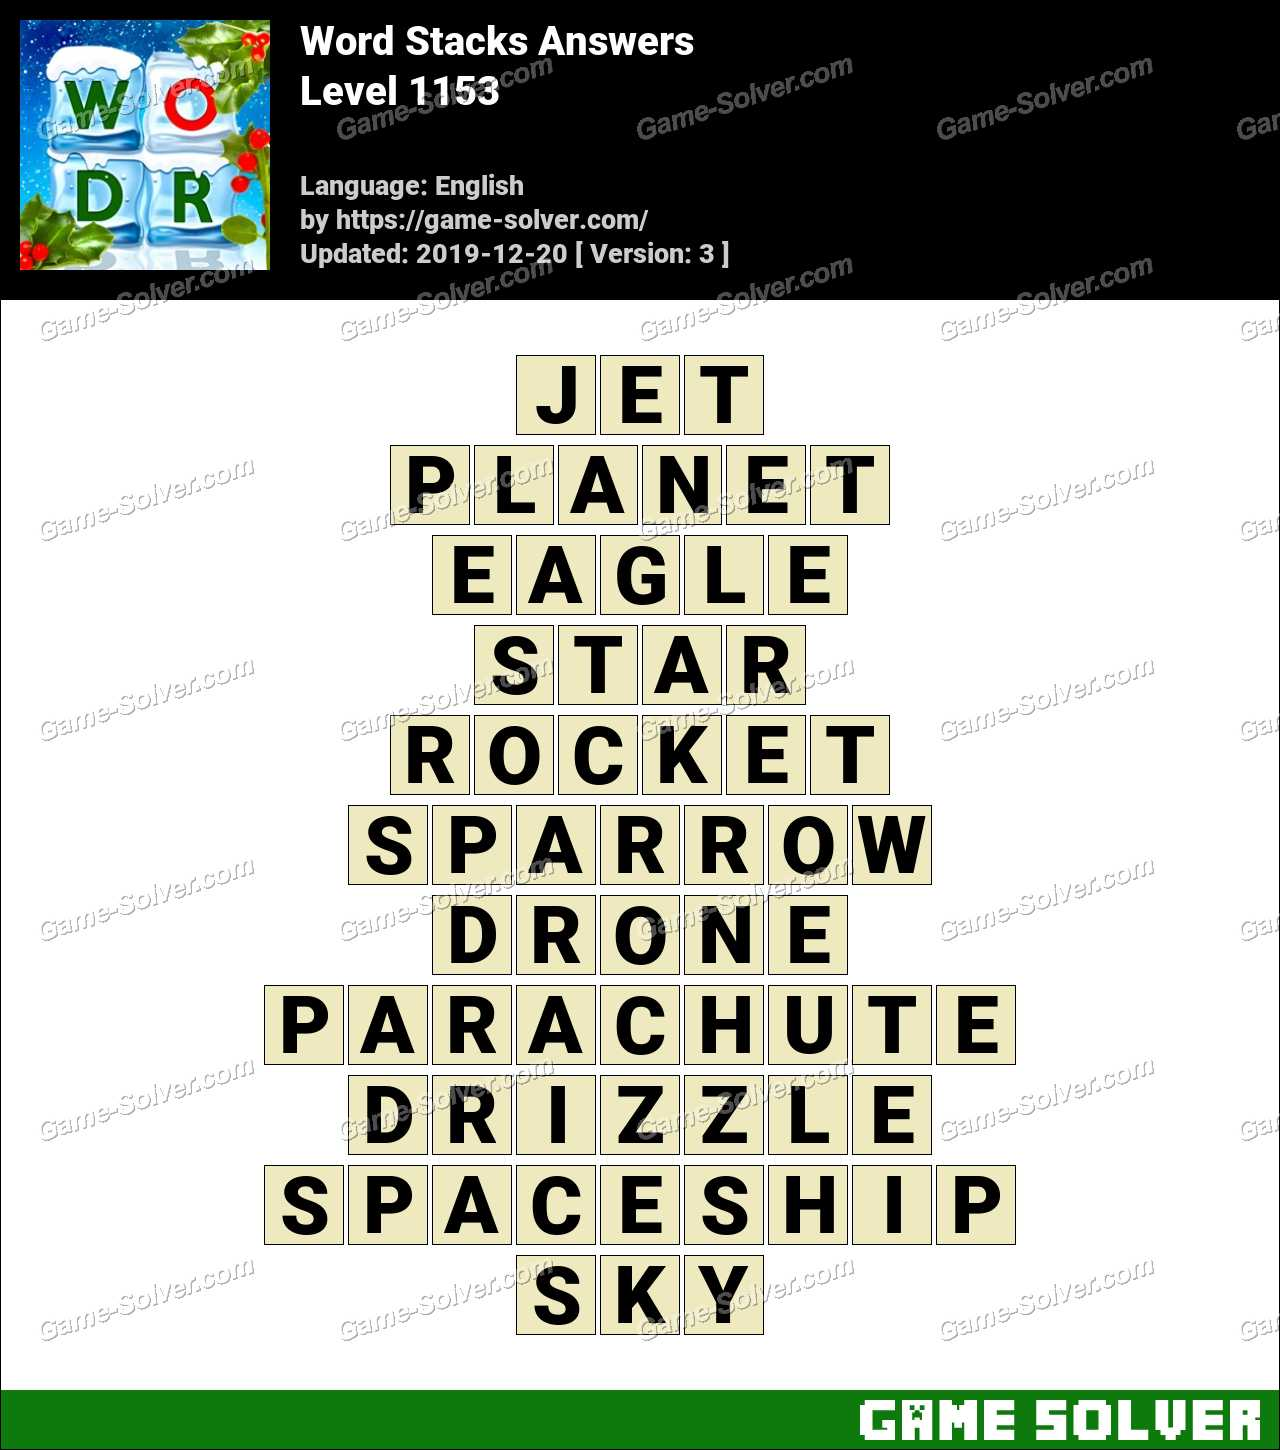 Word Stacks Level 1153 Answers